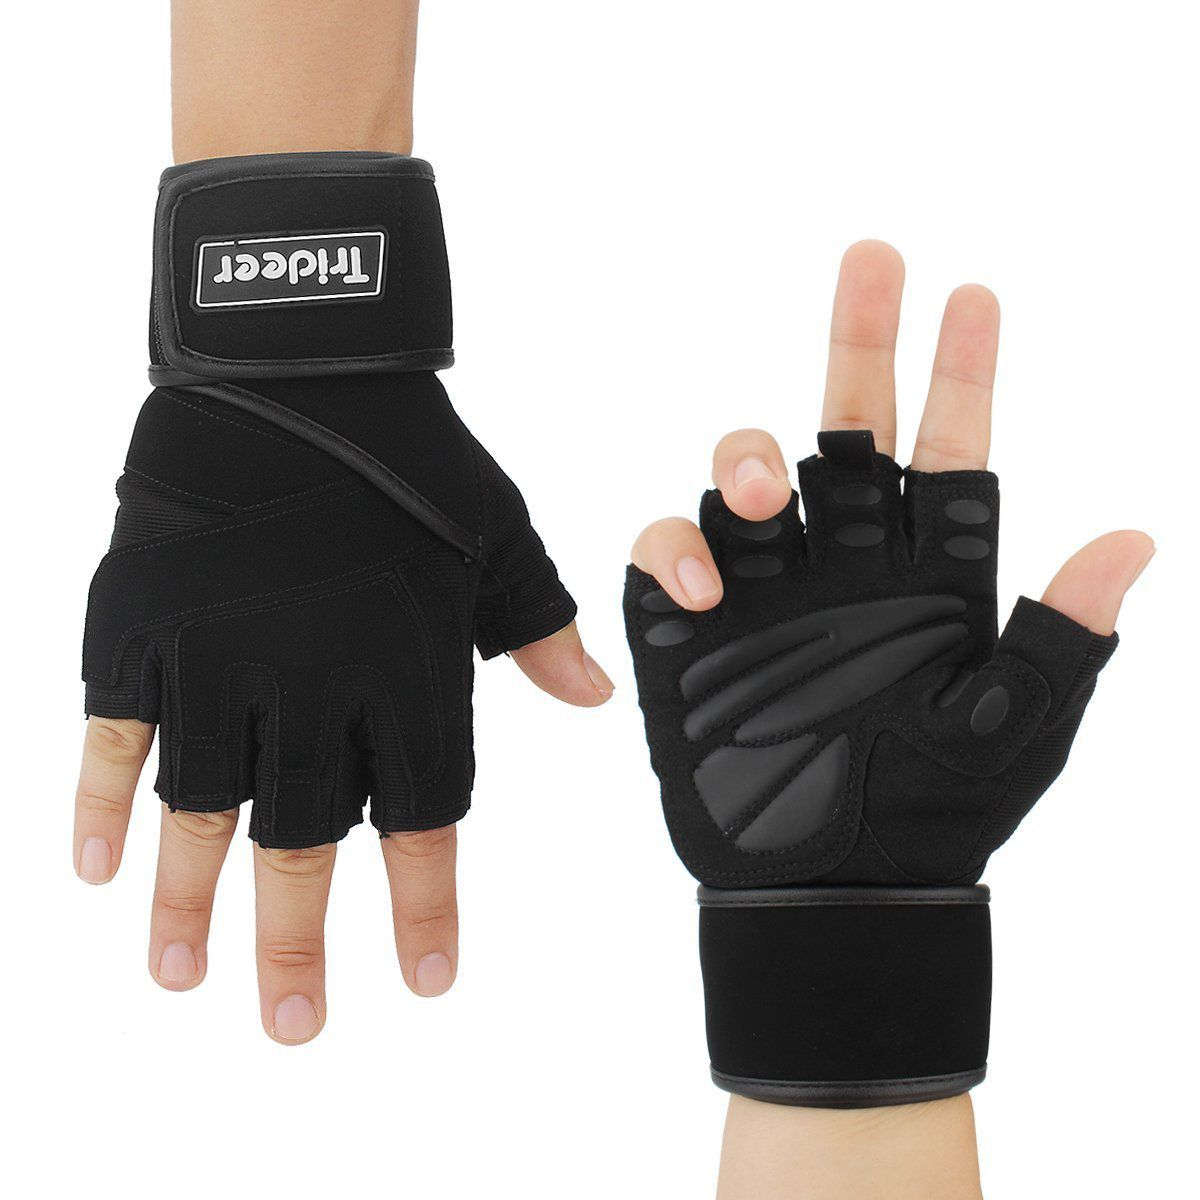 The 7 Best Weightlifting Gloves To Buy In 2019